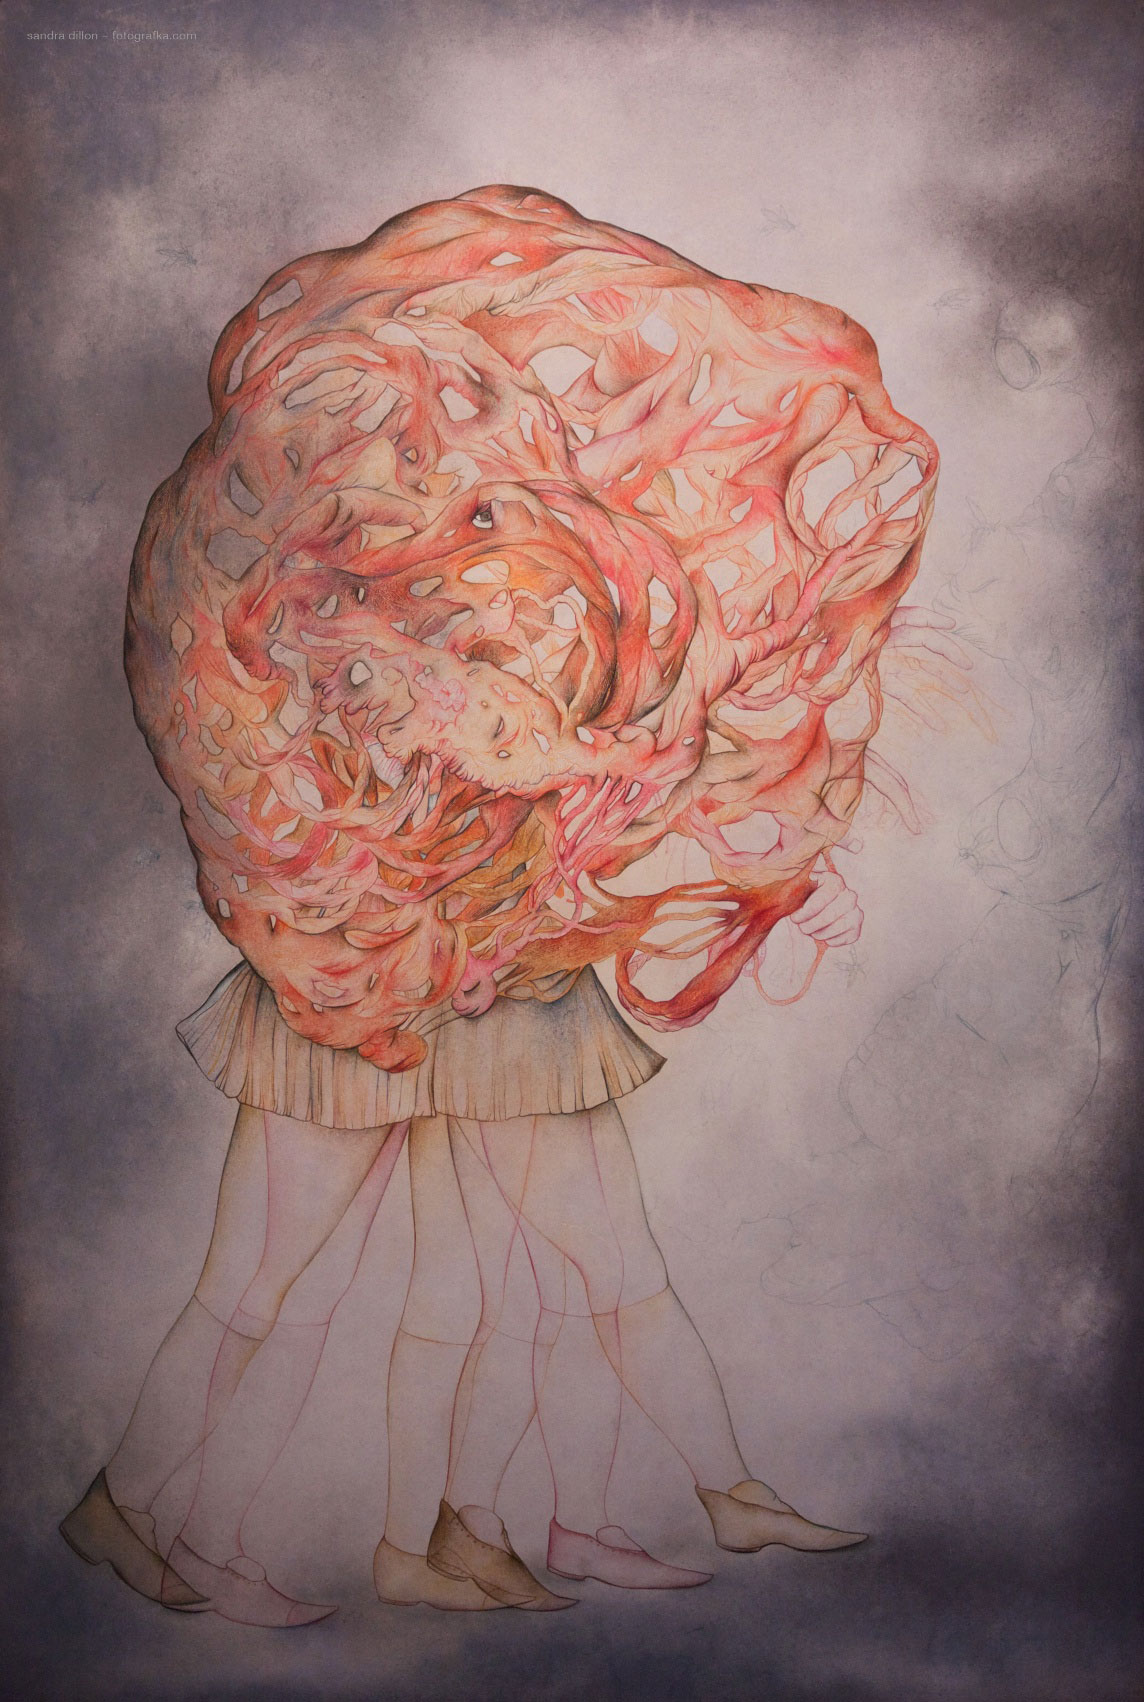 The Day Before Tomorrow, charcoal, pastel and colored pencil on paper, 44in x 30in, 2013